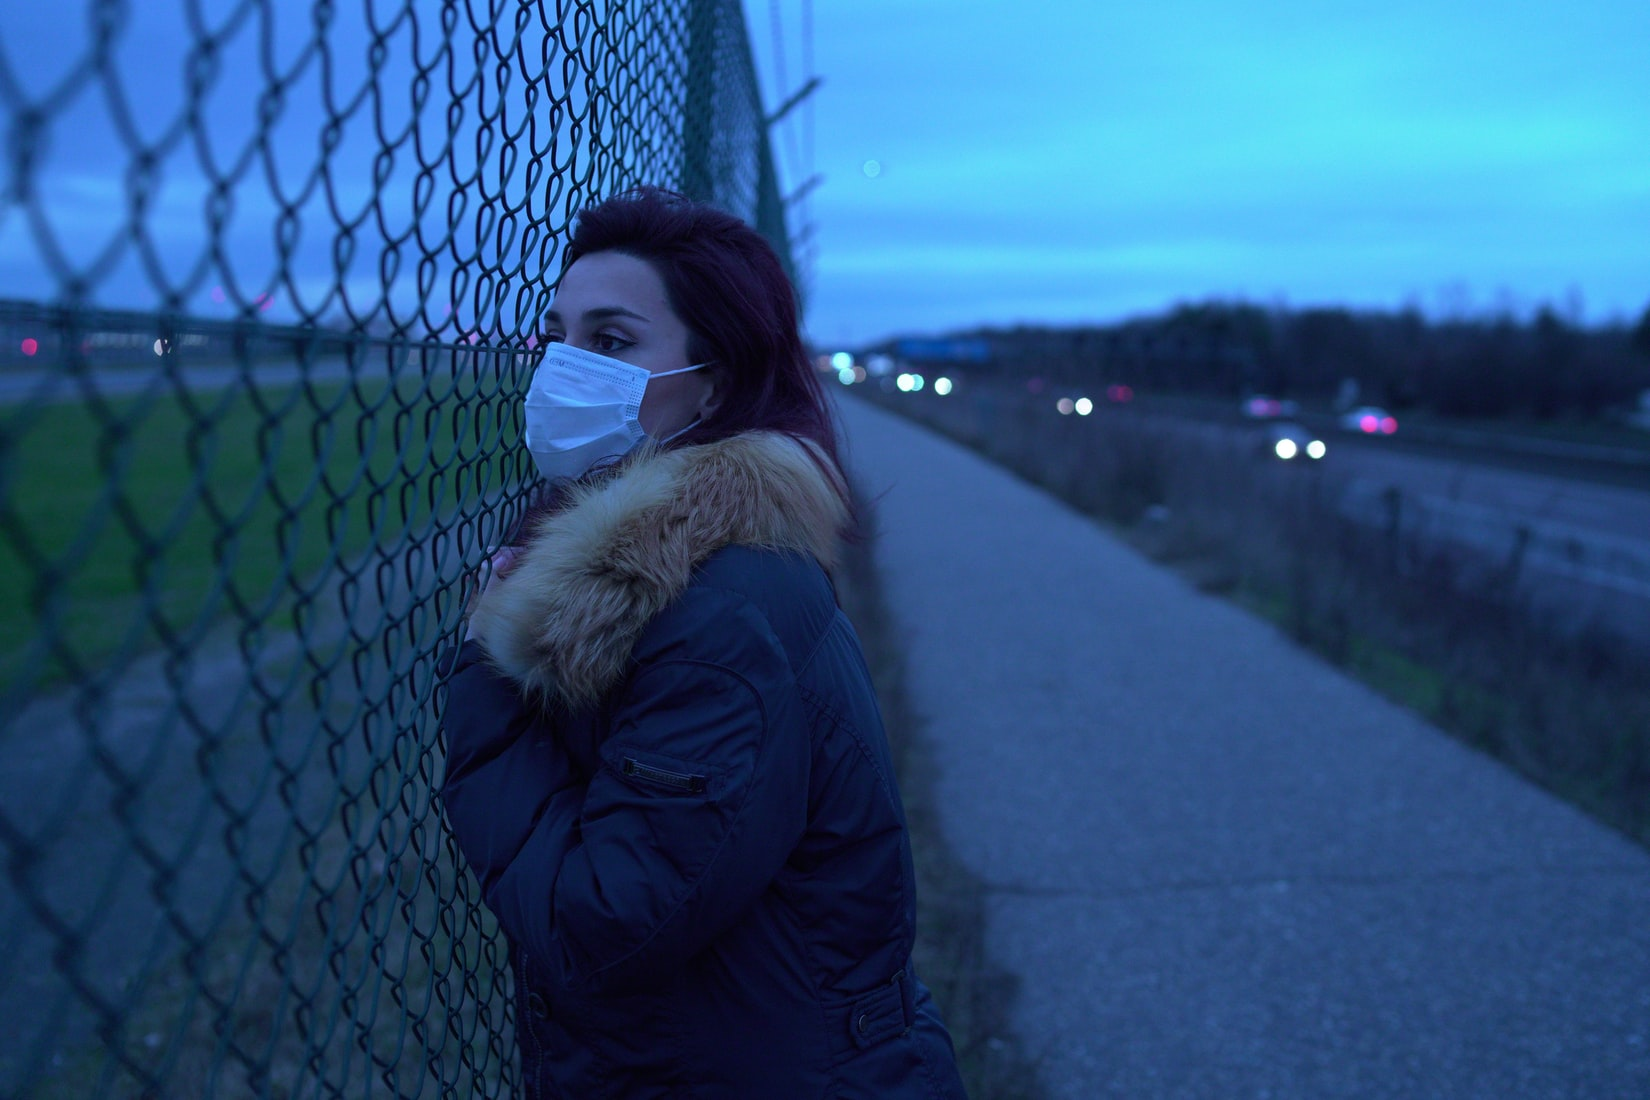 Scared woman with face mask leaning on fence during daytime